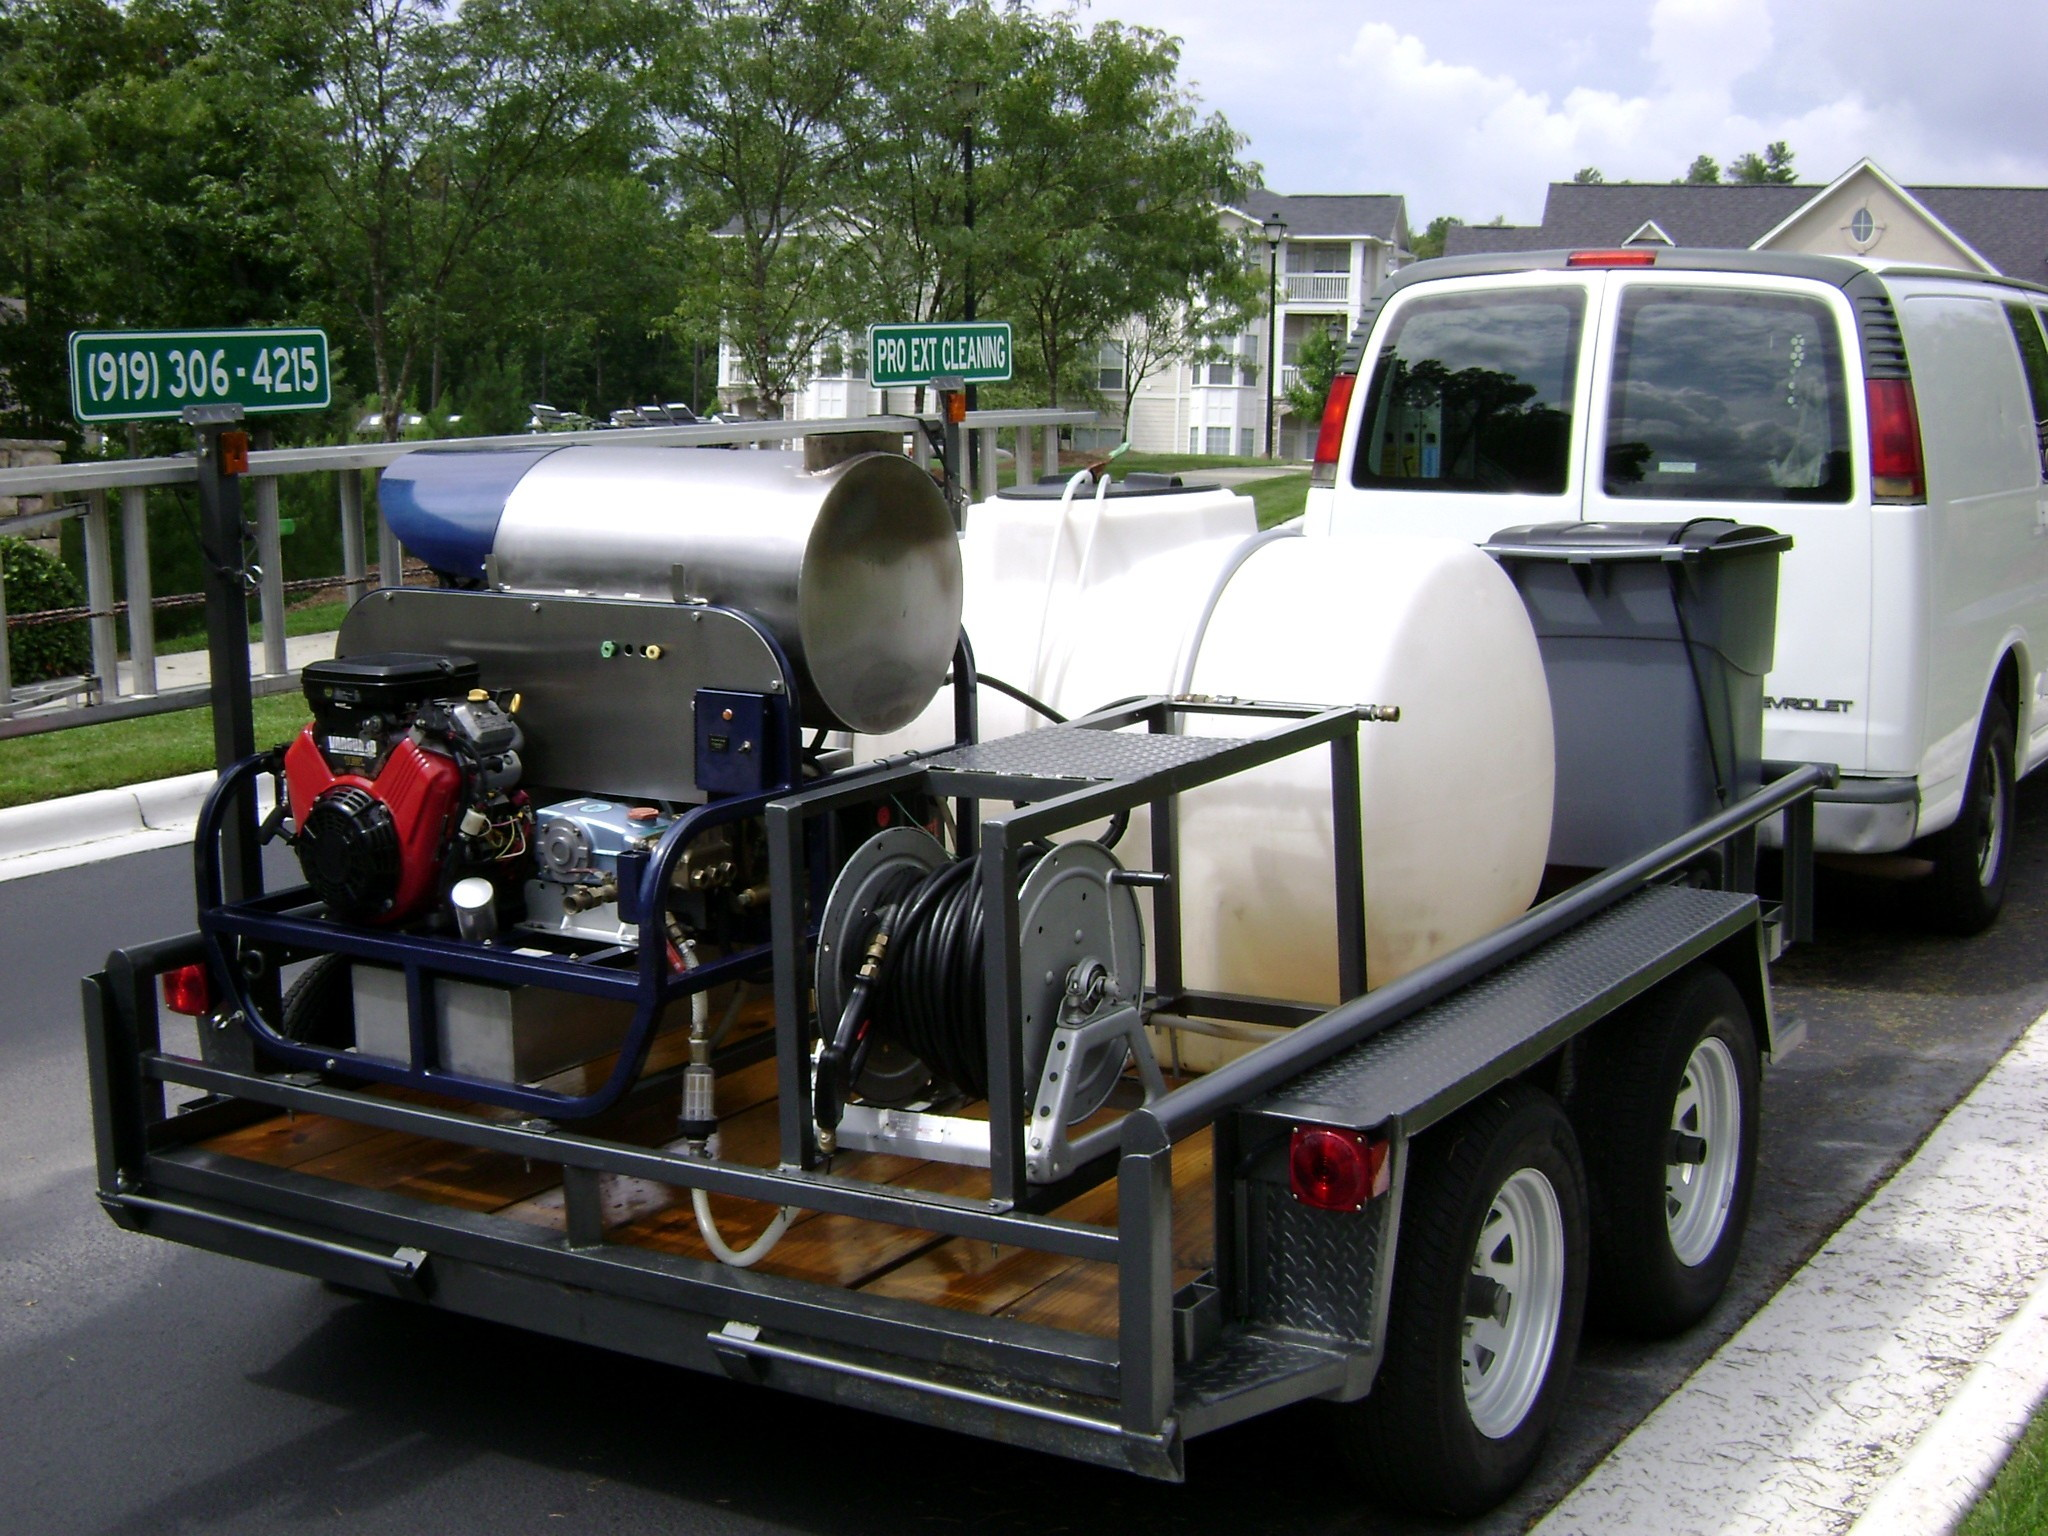 Diesel Trucks For Sale Near Me >> About Monsoon a Durham Pressure Wash Company